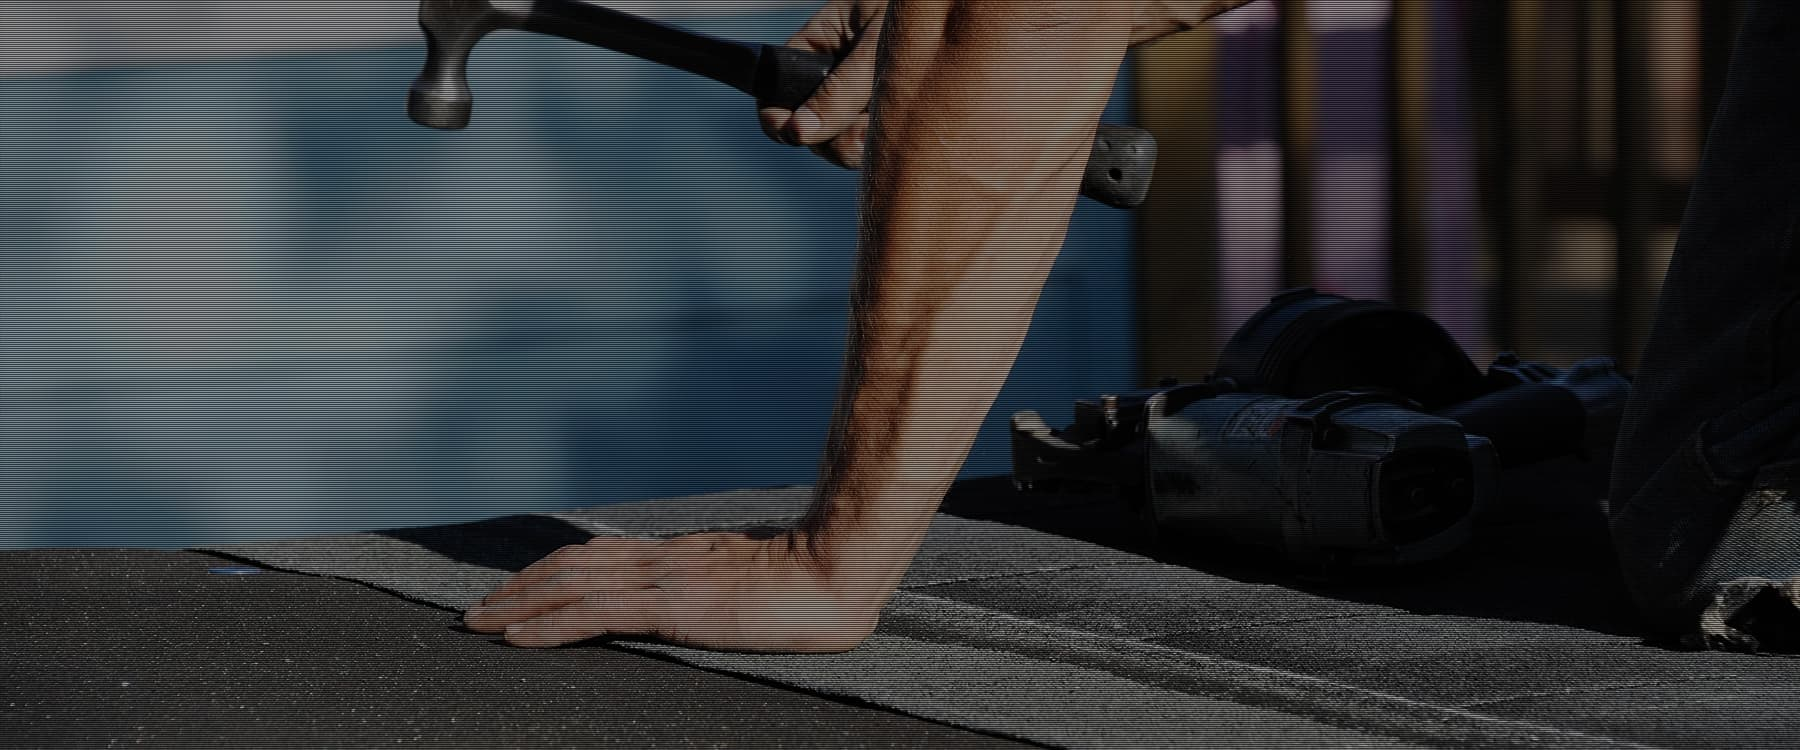 Roofing and Guttering in Limerick